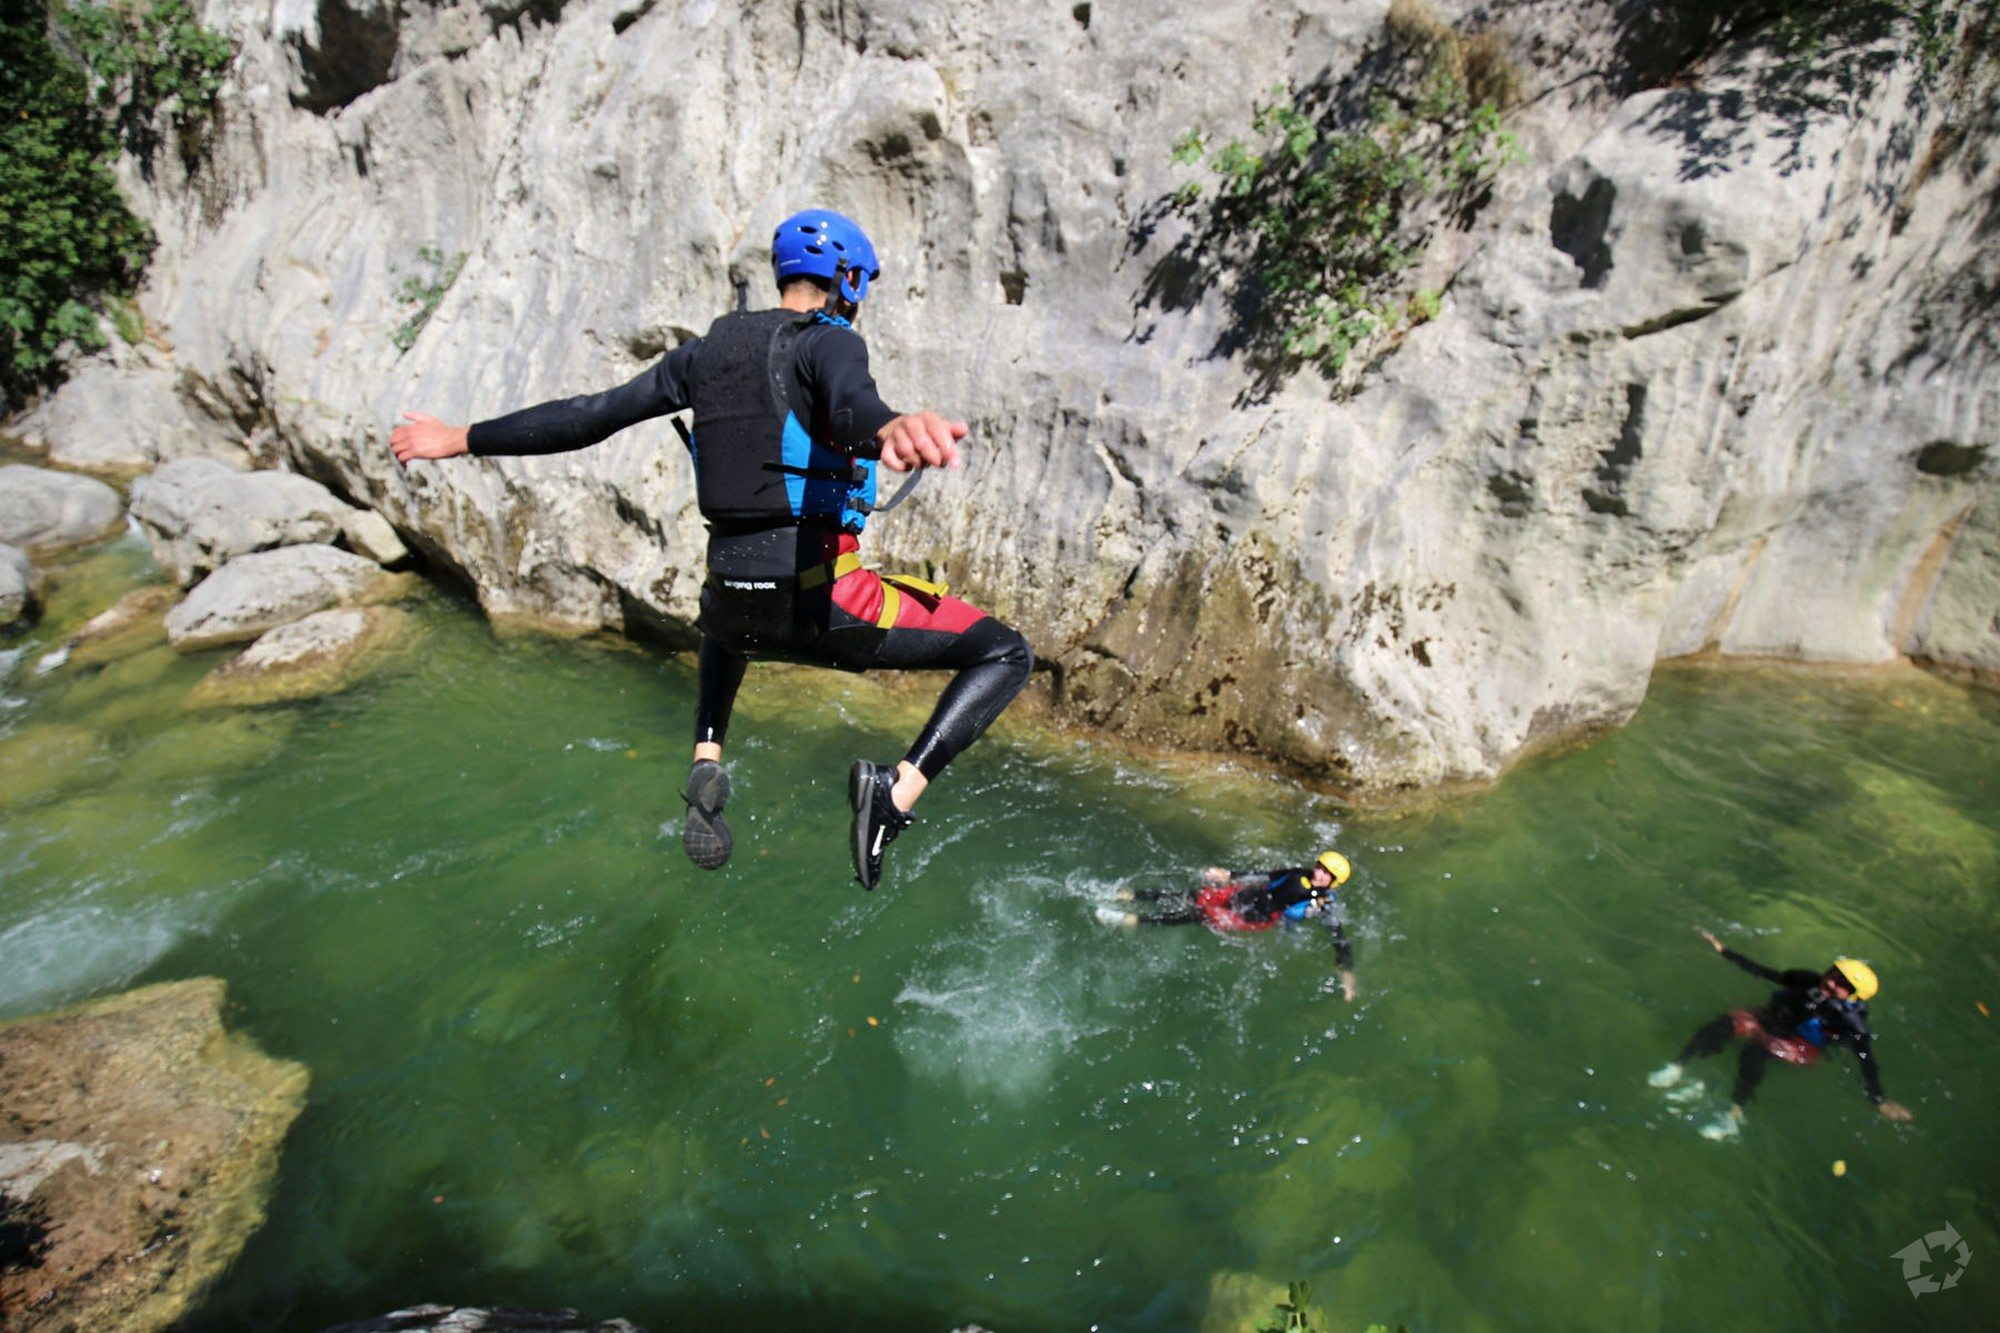 2018 Excursion >> Canyoning excursion on Cetina River from Split - Croatia